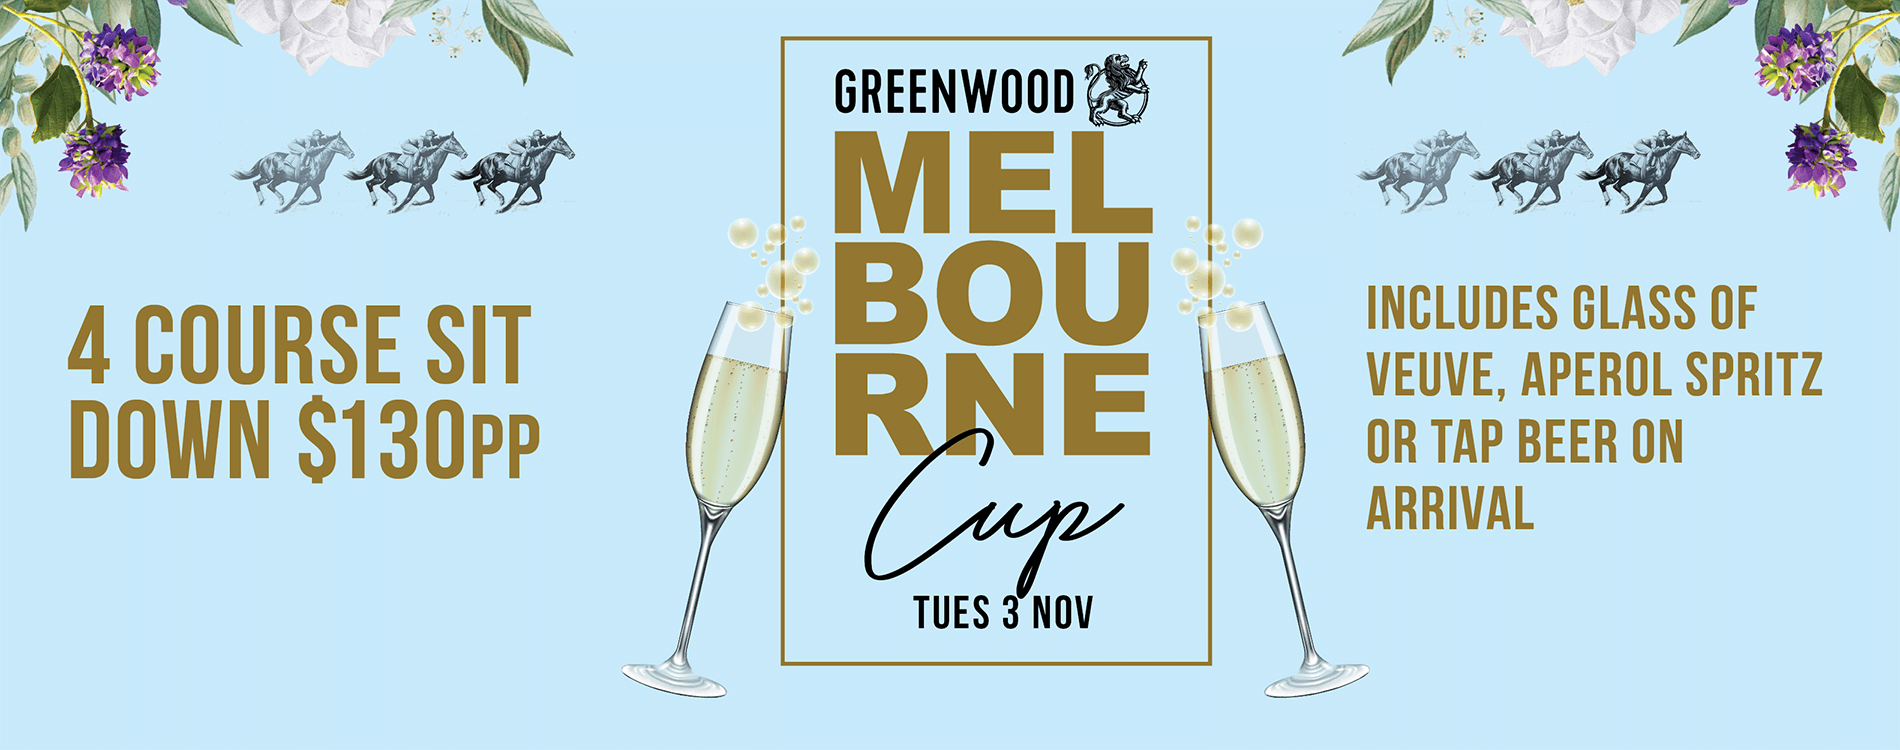 Melbourne Cup at the Greenwood